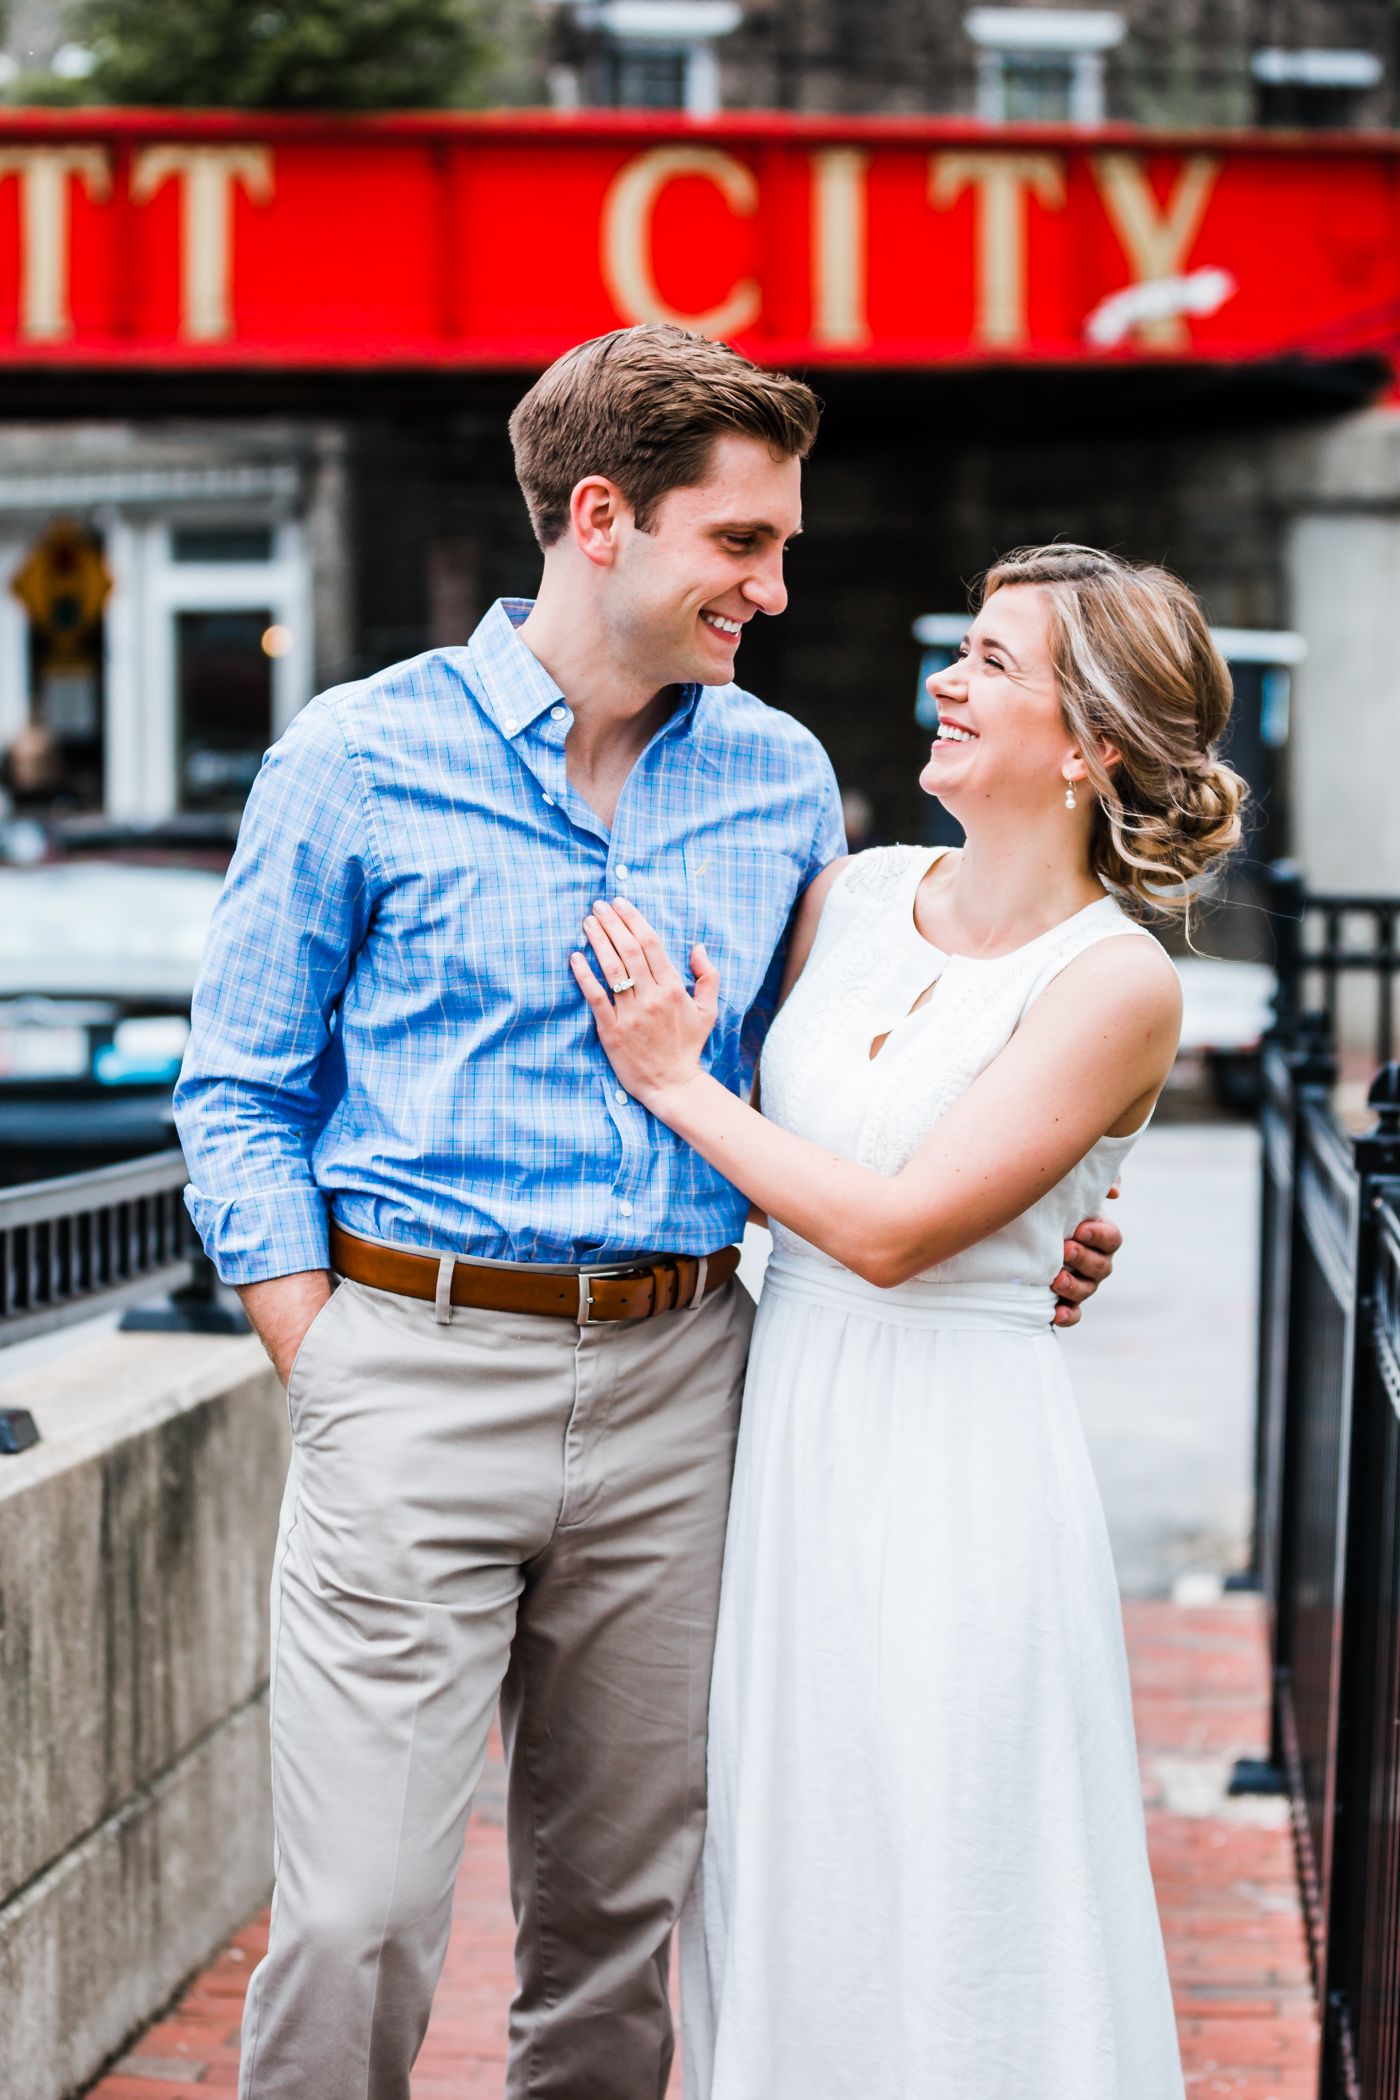 couple smiling together in ellicott city, md - maryland wedding photography husband and wife team